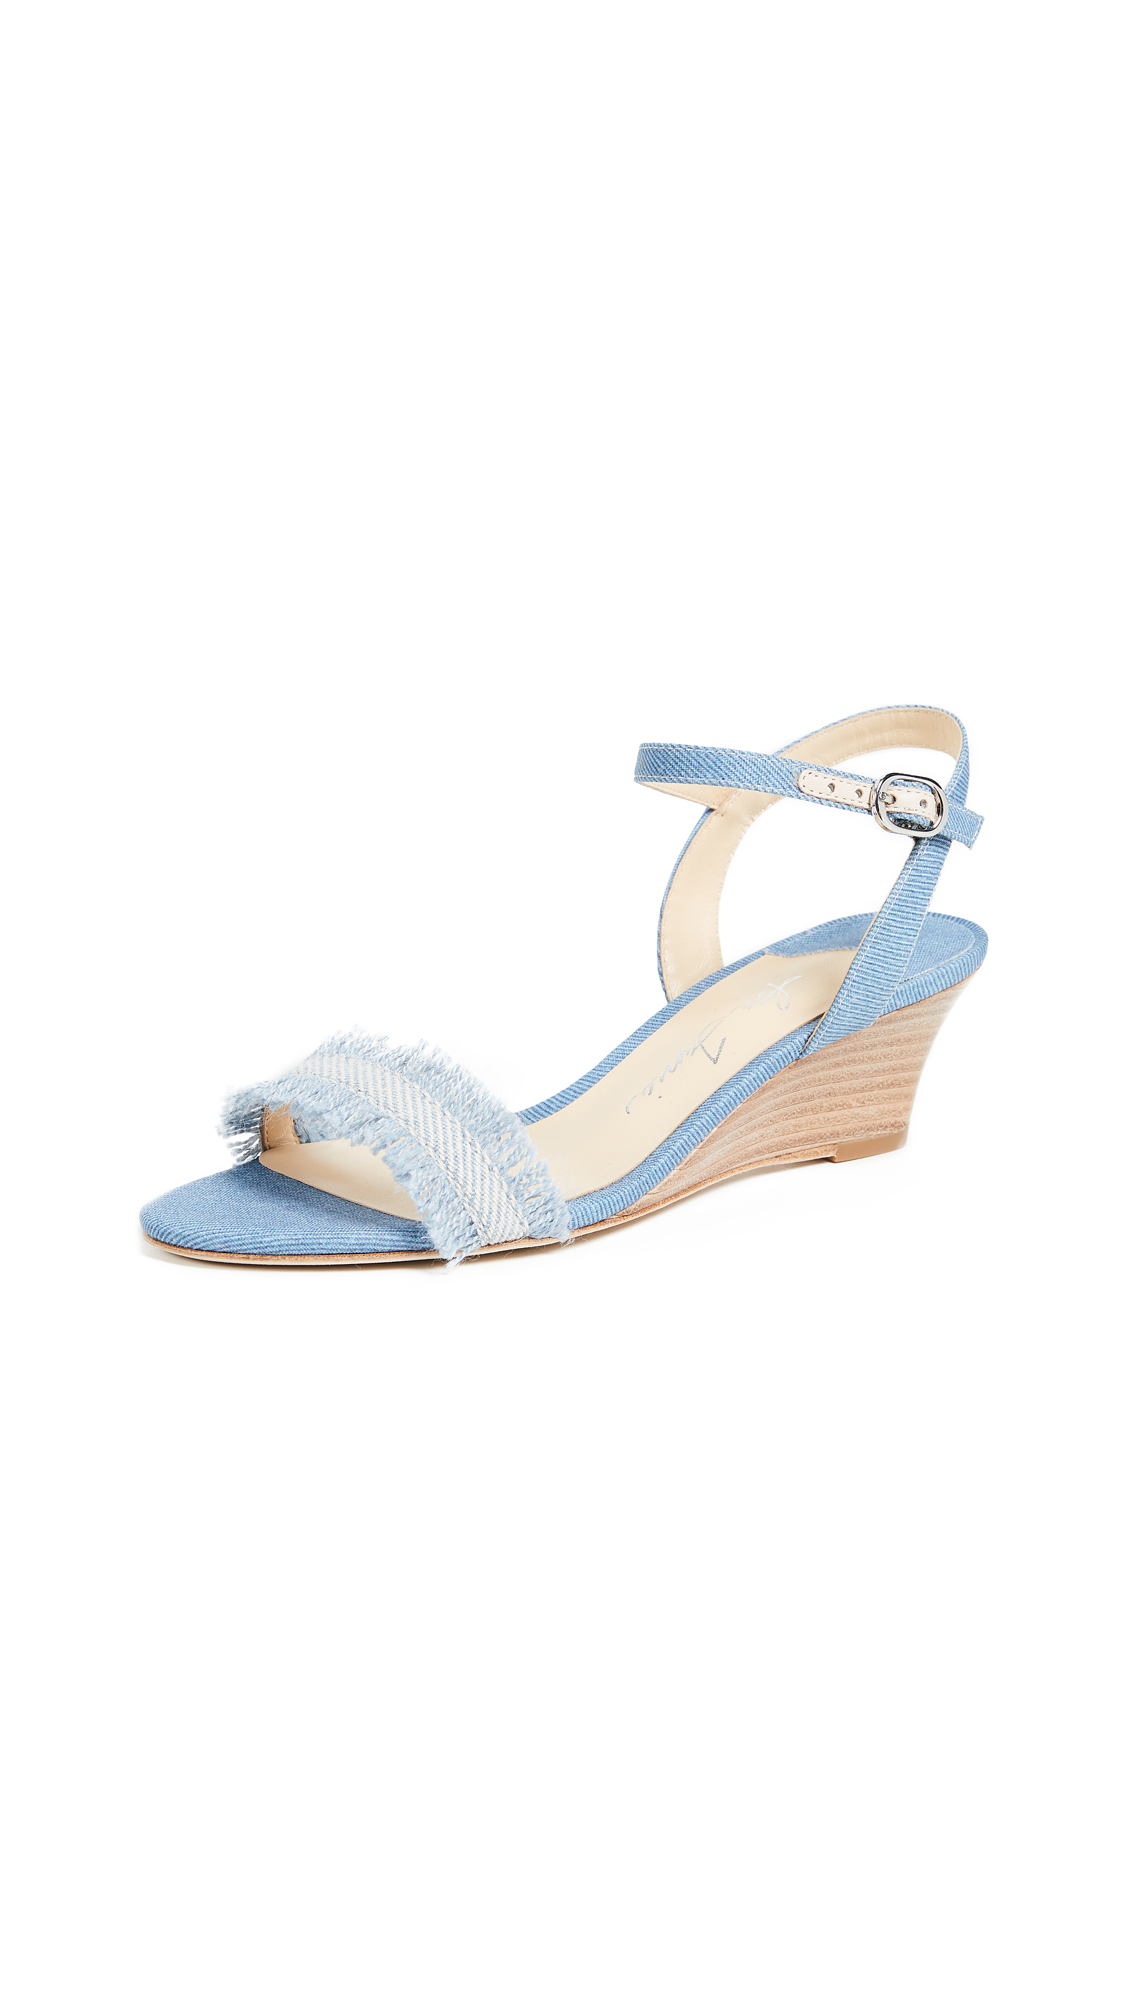 Isa Tapia Fabiola Wedge Sandals - Denim